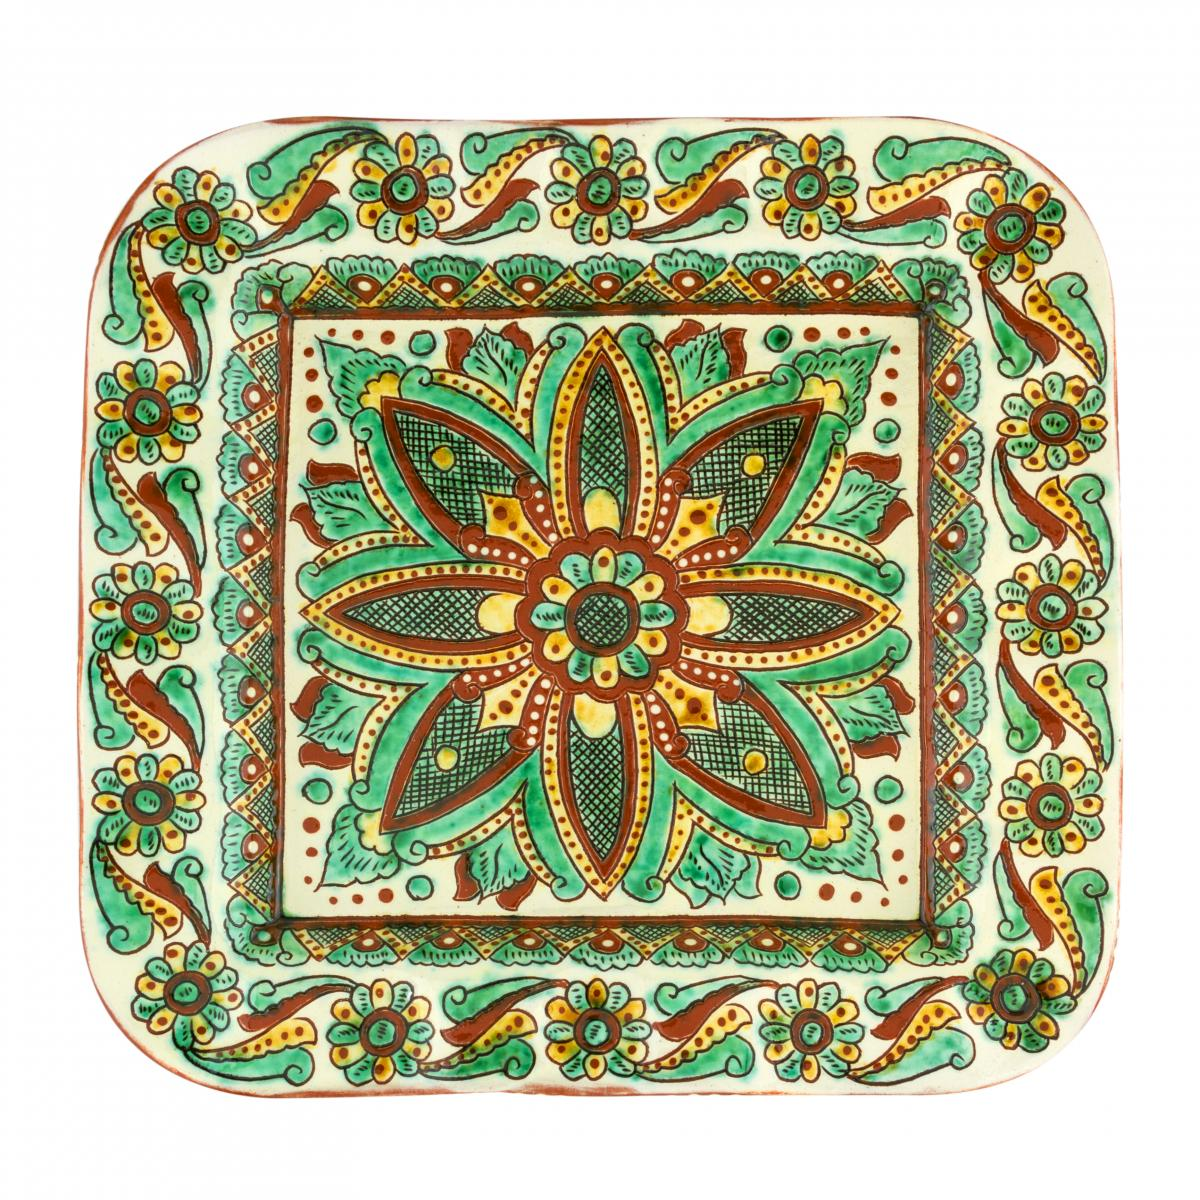 Square plate with floral pattern, handmade work, 29X29 cm. Photo №1. | Narodnyi dim Ukraine